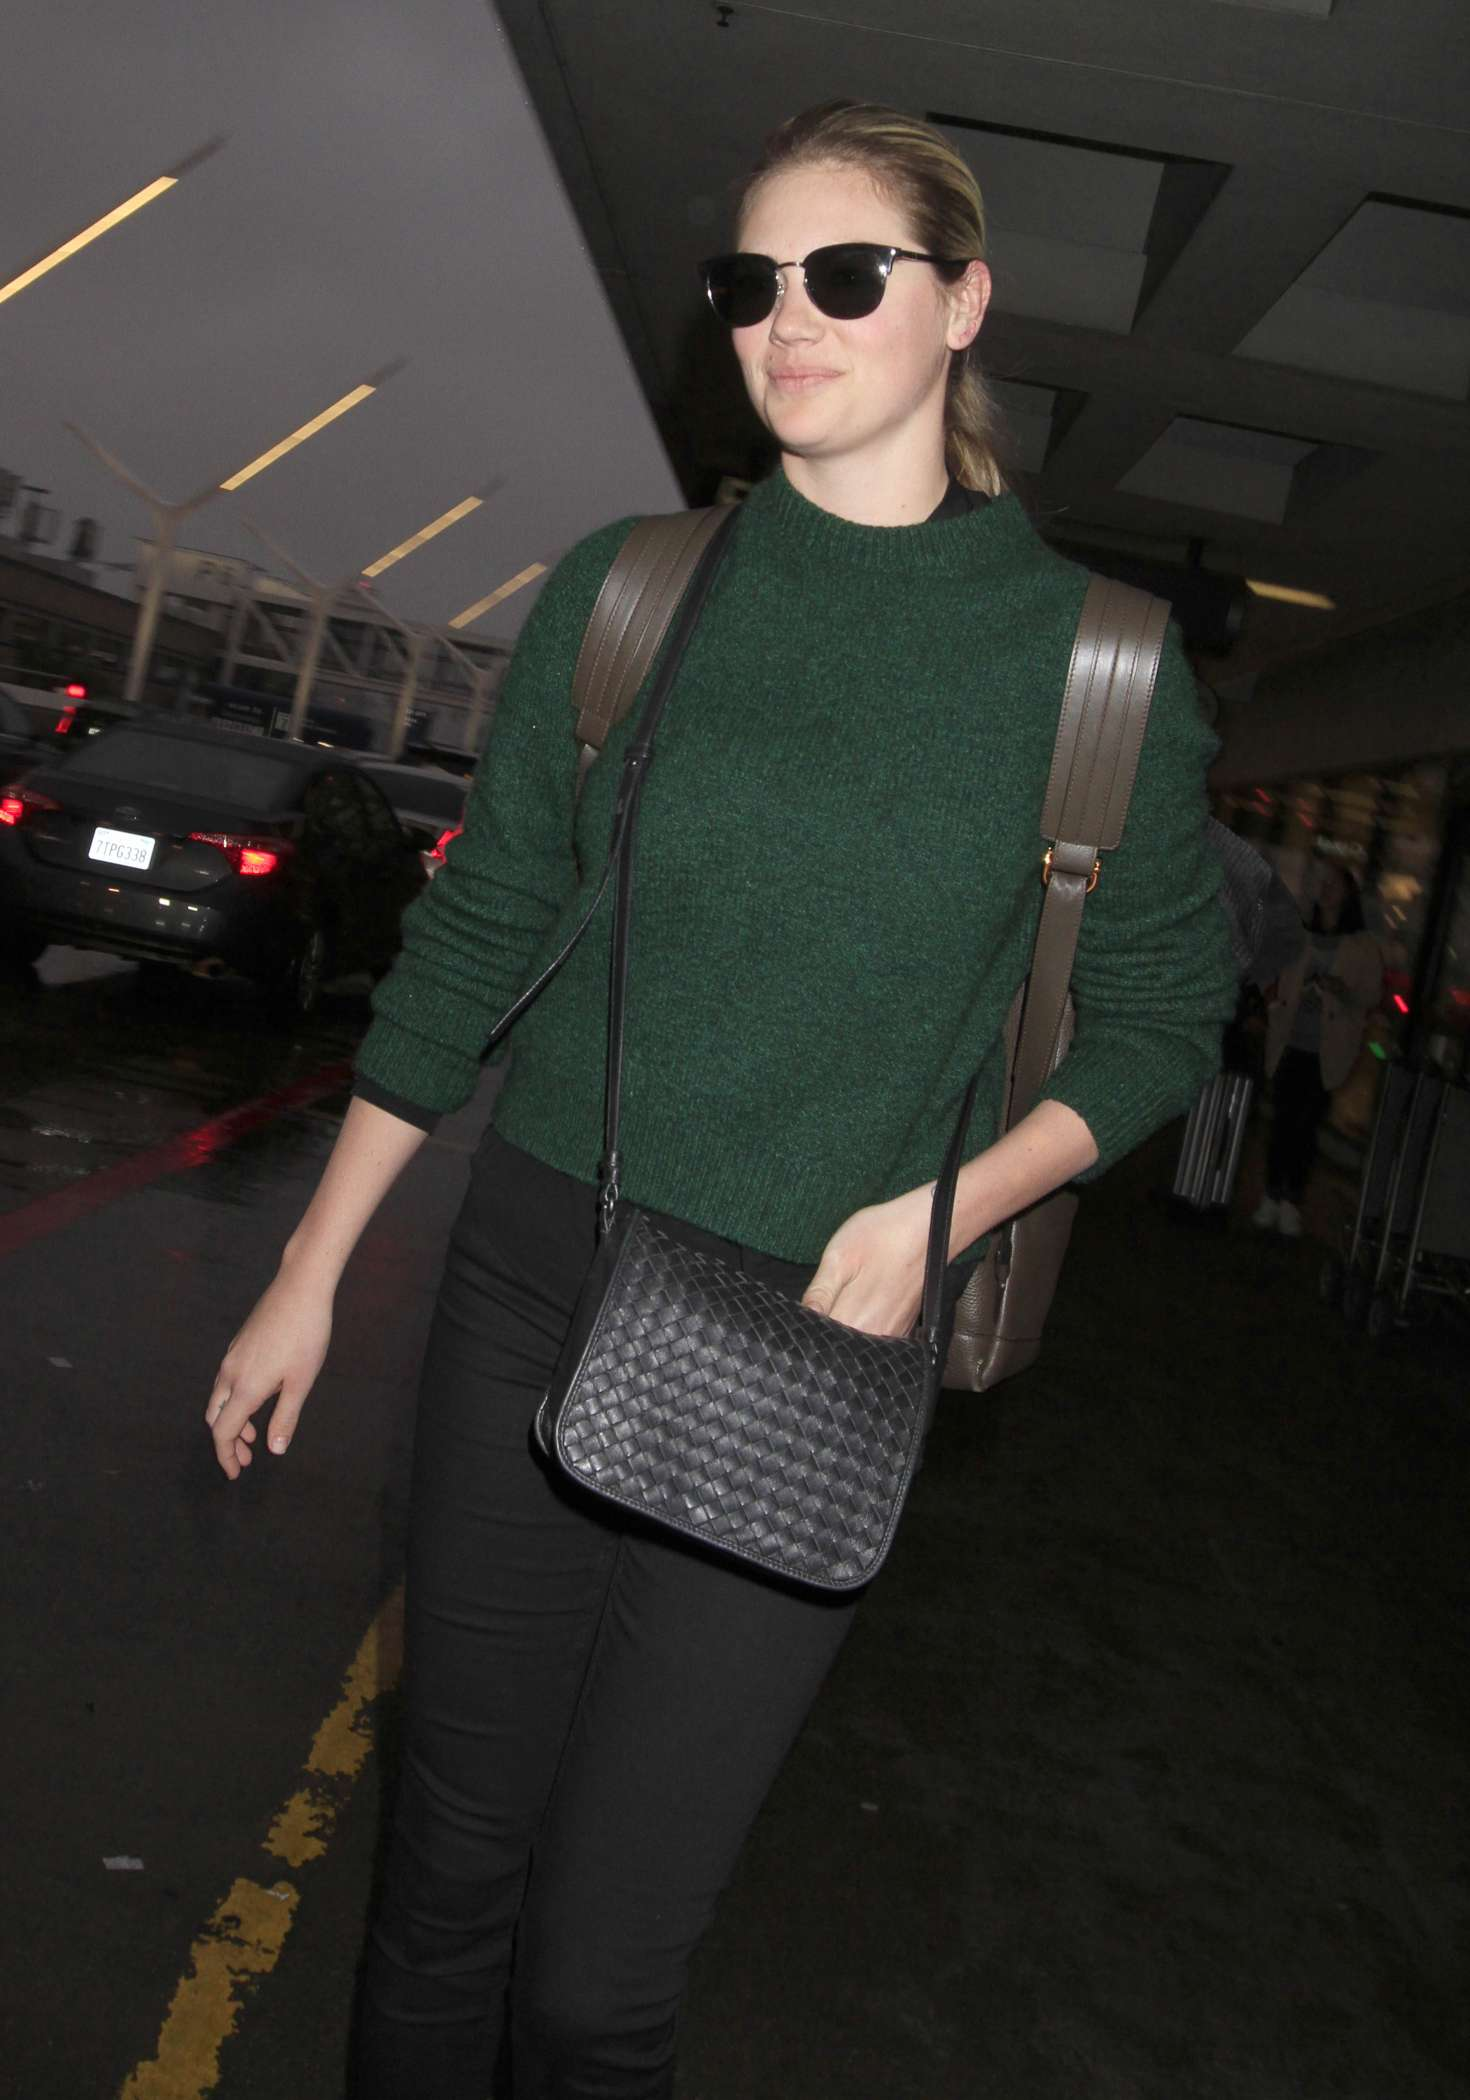 Kate Upton - Arrives at LAX Airport in Los Angeles